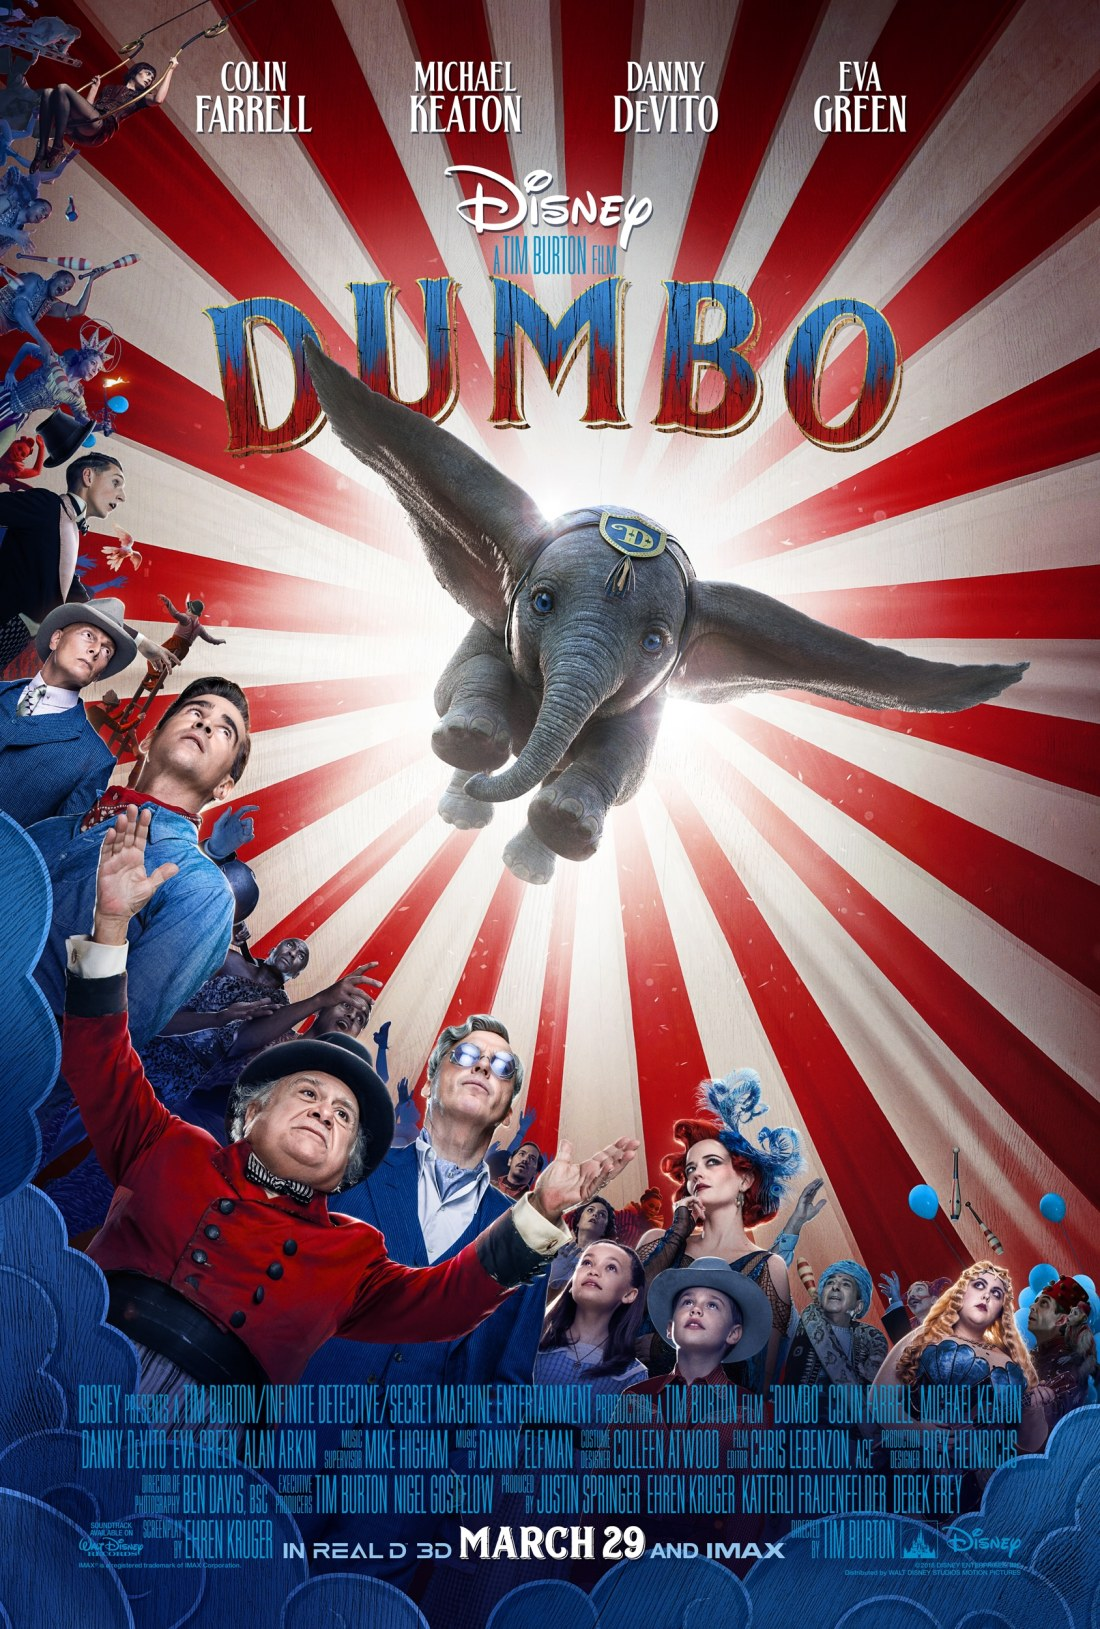 Dumbo Movie Poster. Disney's live-action adventure Dumbo film explores where differences are celebrated, family is cherished and dreams take flight. In theaters March 29, 2019.